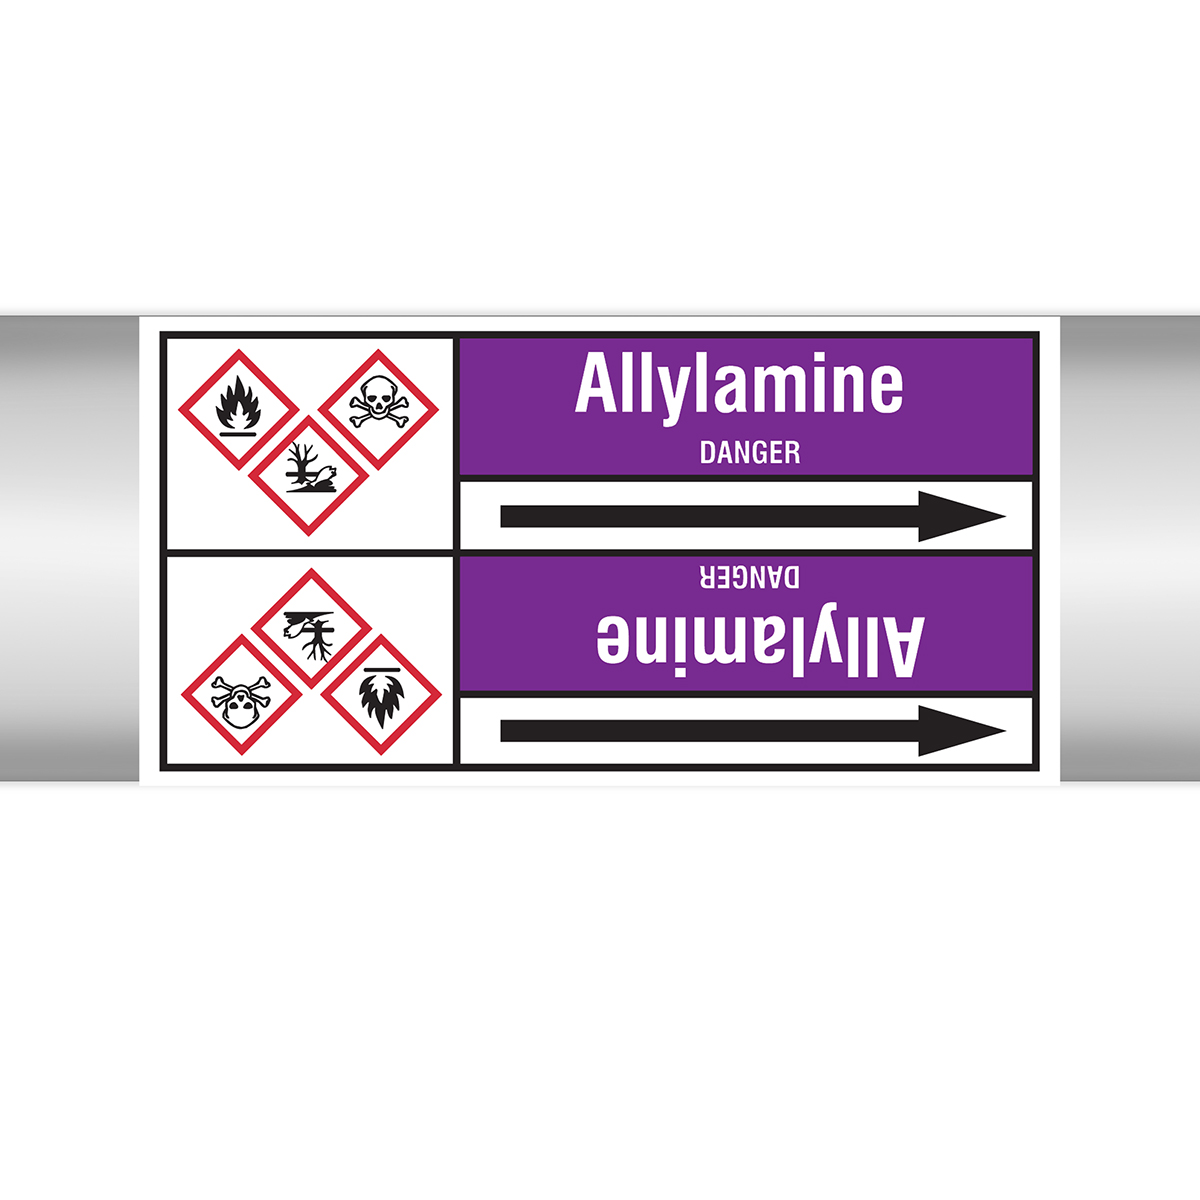 Roll Form Liner-less Type 2 - Allylamine